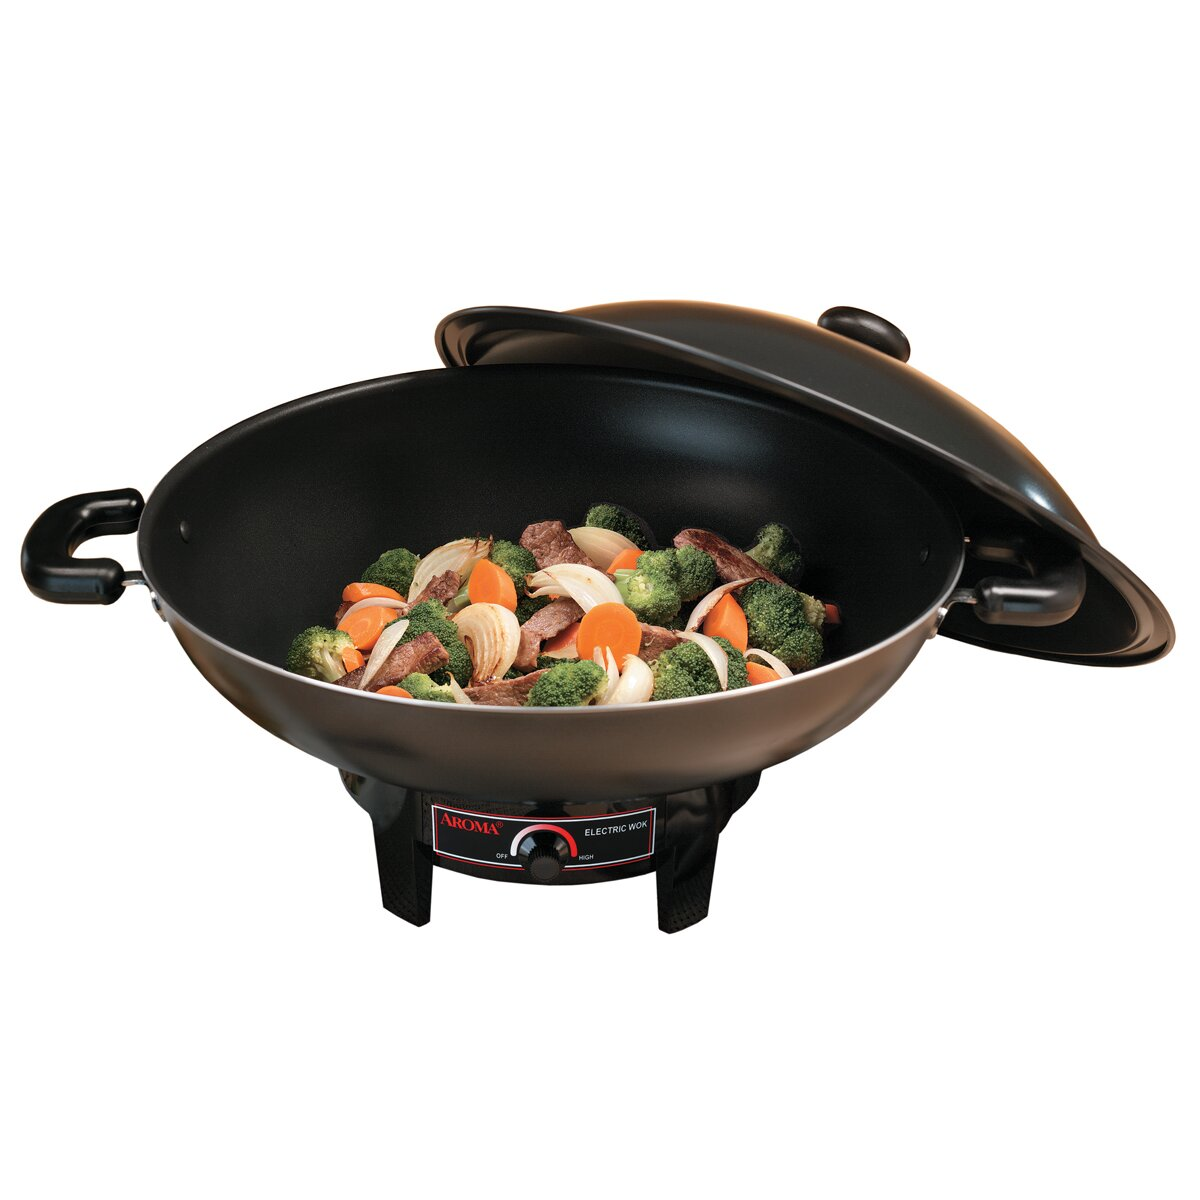 Aroma 6.5 Quart Electric Wok with Tempura Rack & Reviews | Wayfair